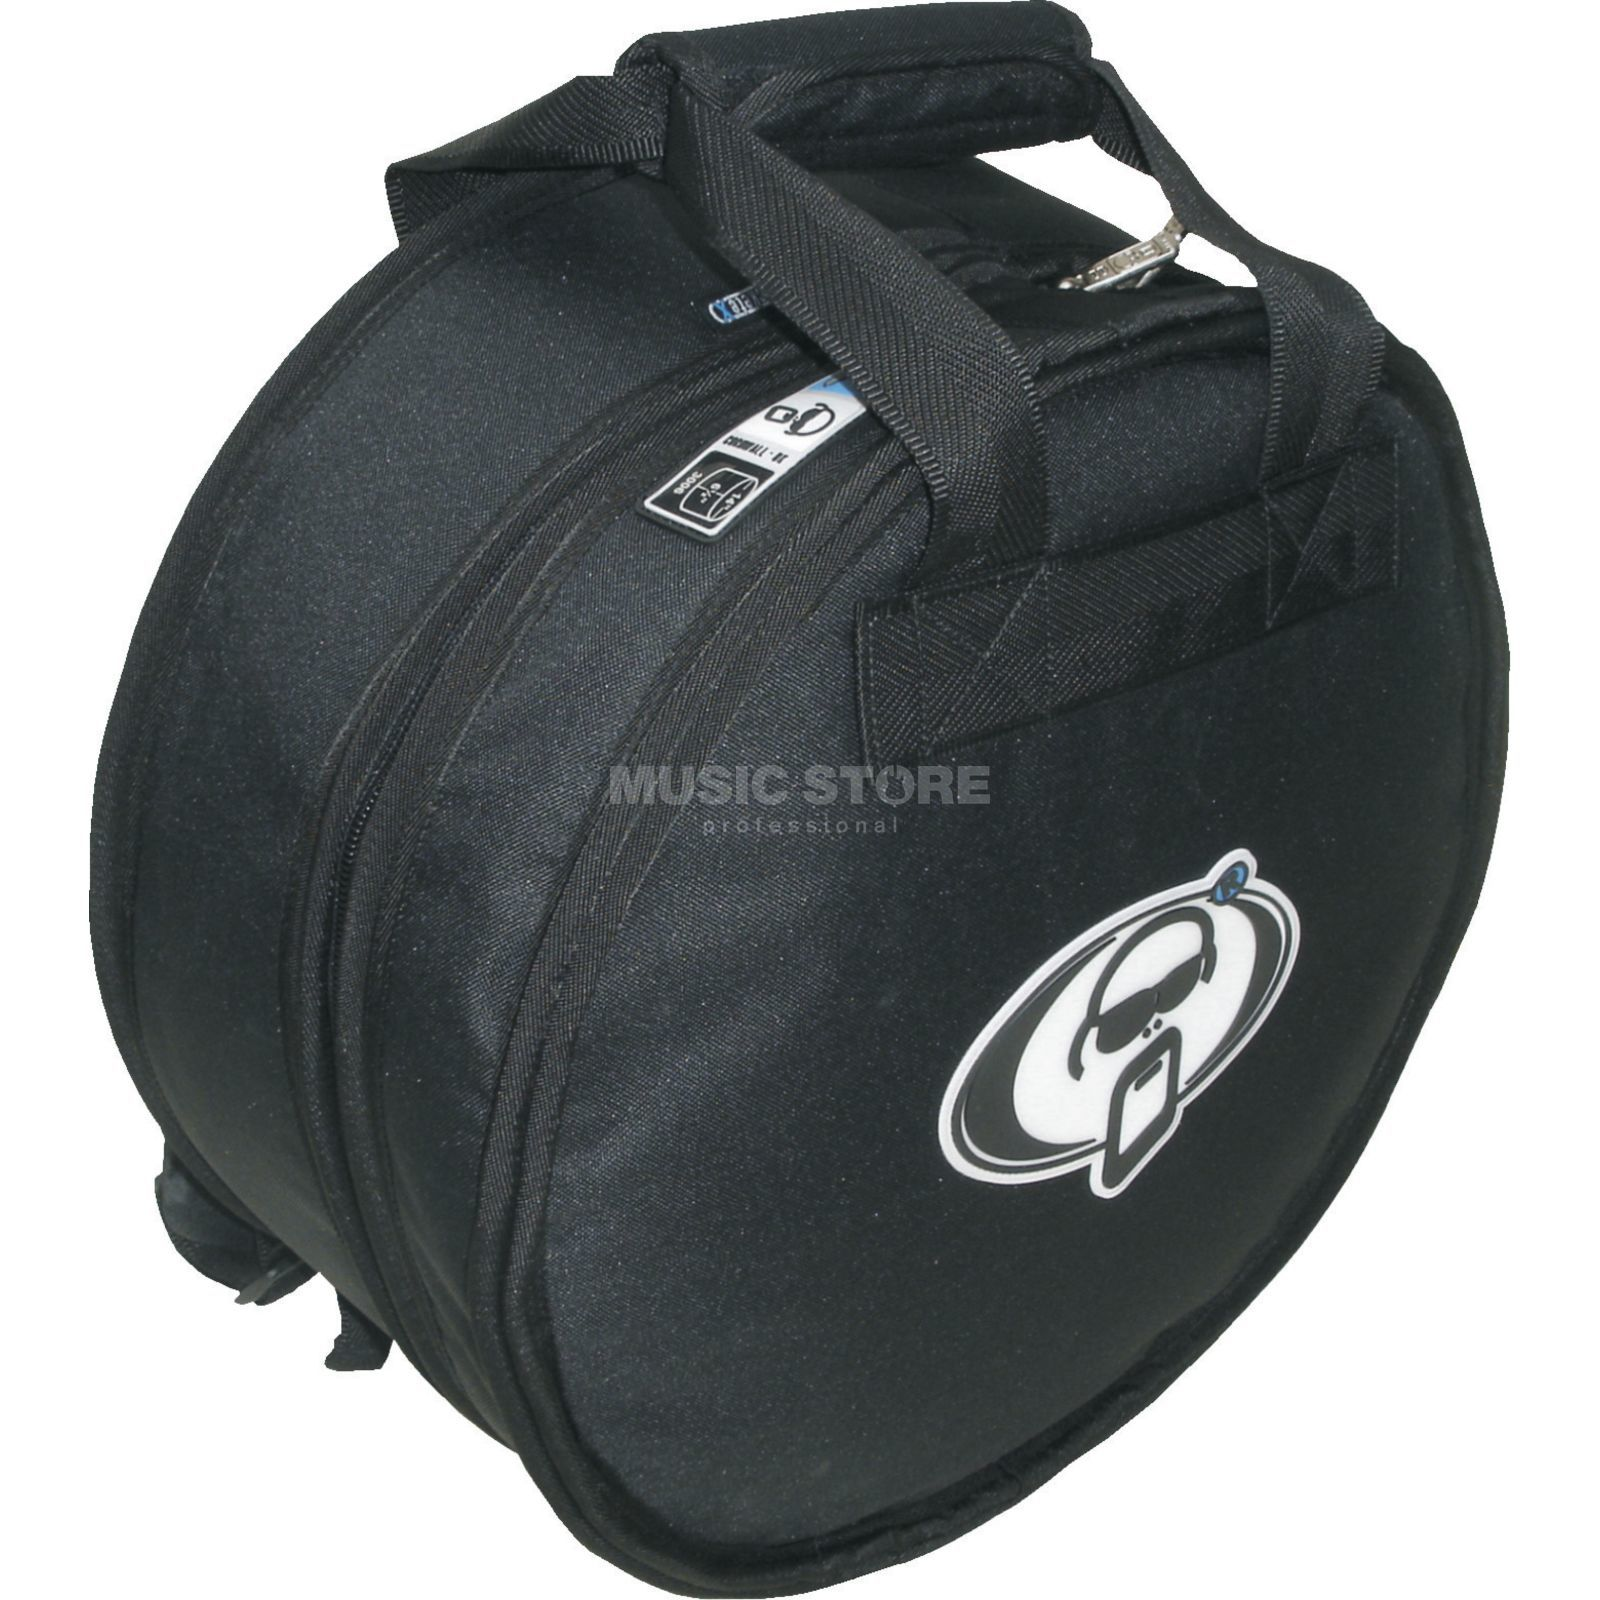 "Protection Racket Snare Bag Rucksack 3011R, 14""x5,5"" Produktbild"